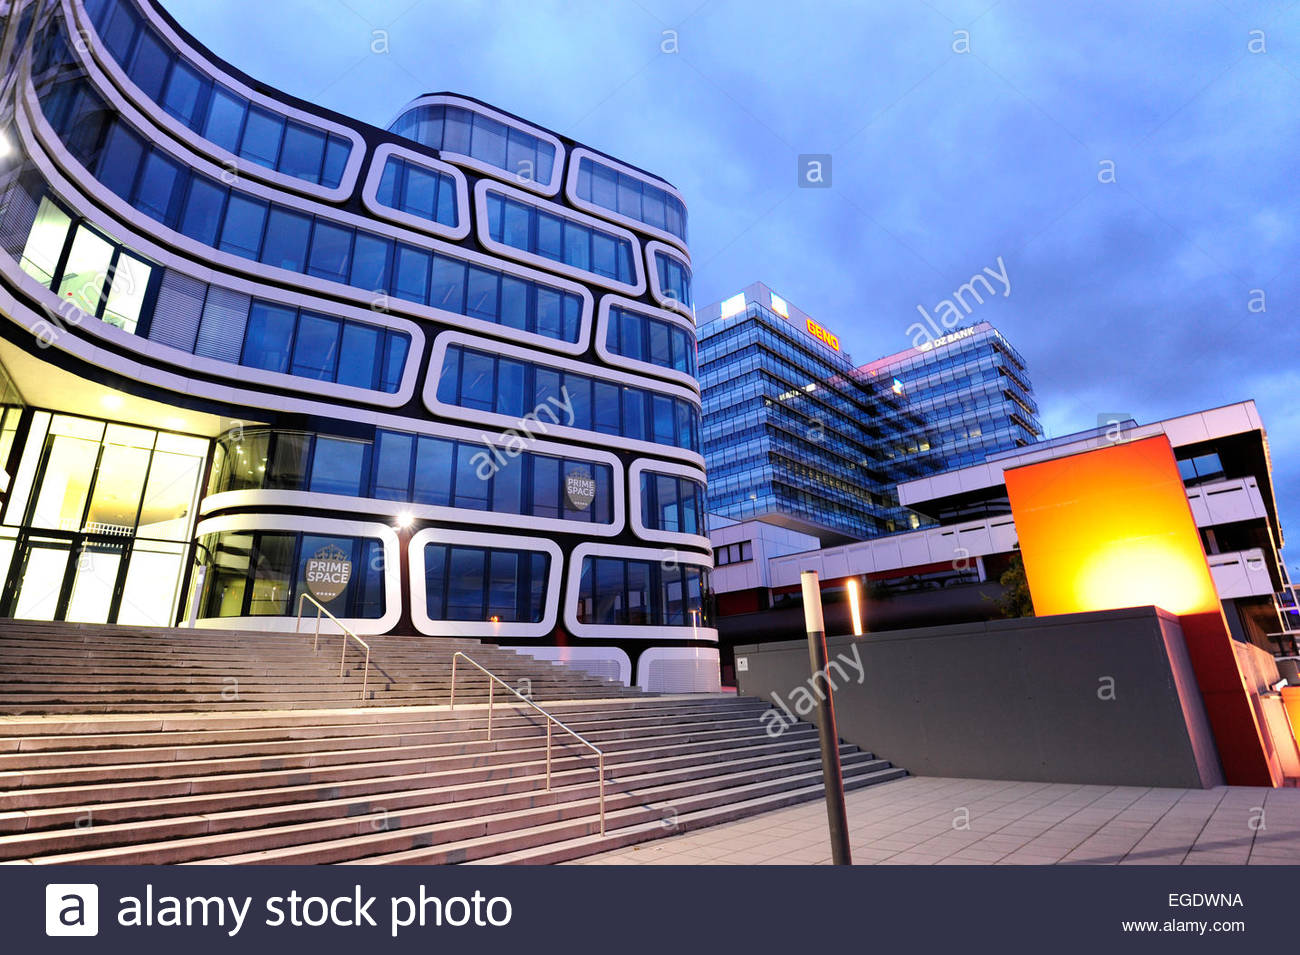 modern architecture in front of the stuttgart 21 development area stock photo royalty free. Black Bedroom Furniture Sets. Home Design Ideas